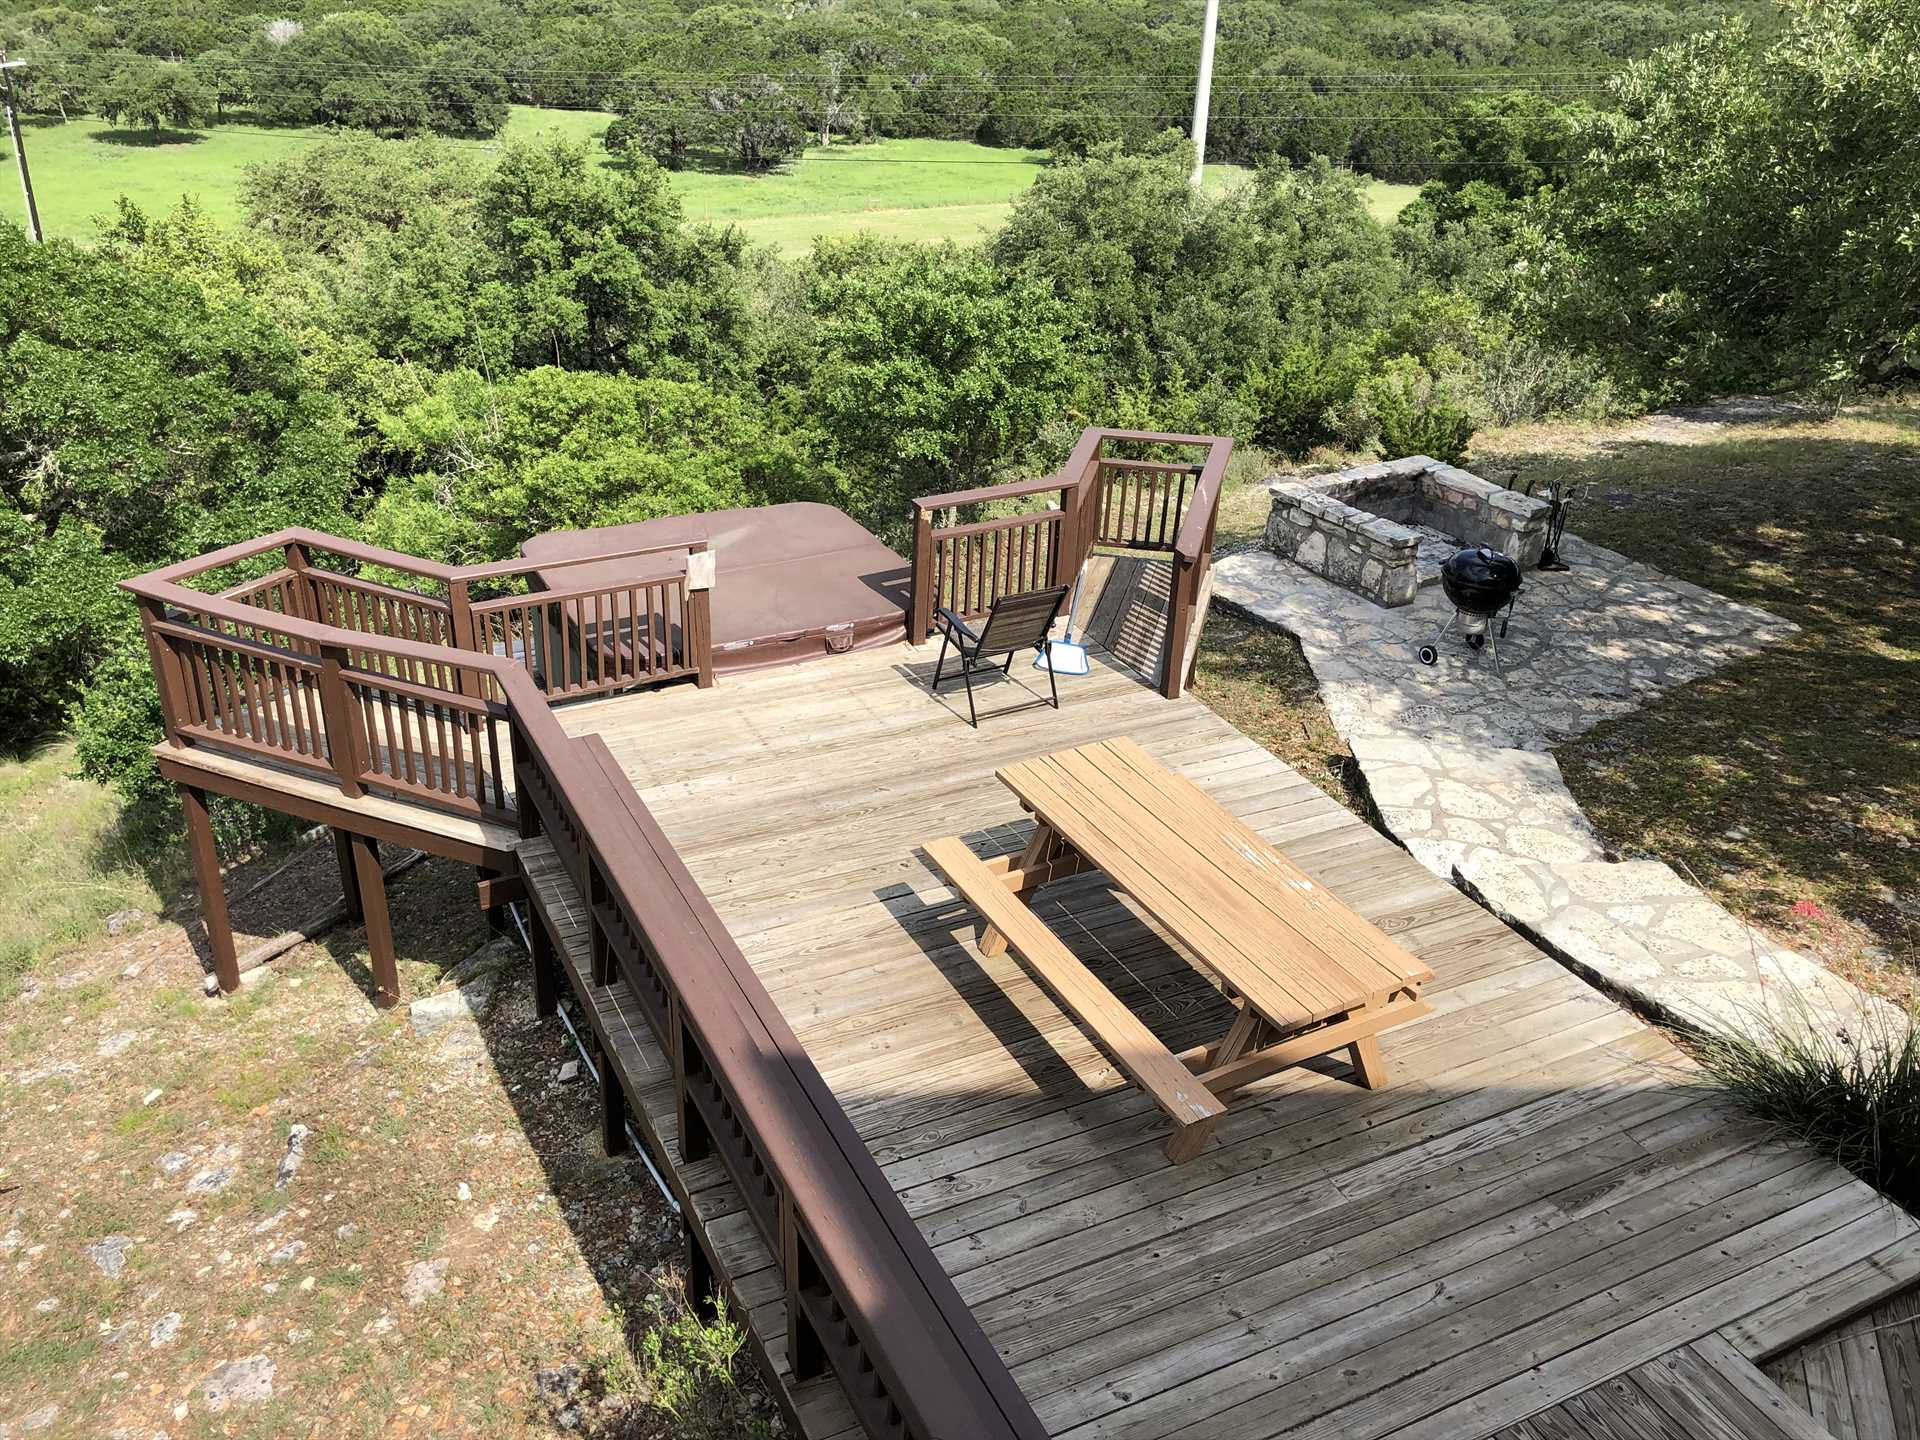 Let's see...fire pit, charcoal grill, plenty of seating, a hot tub, and eye-popping Hill Country views. You may never want to leave the deck!